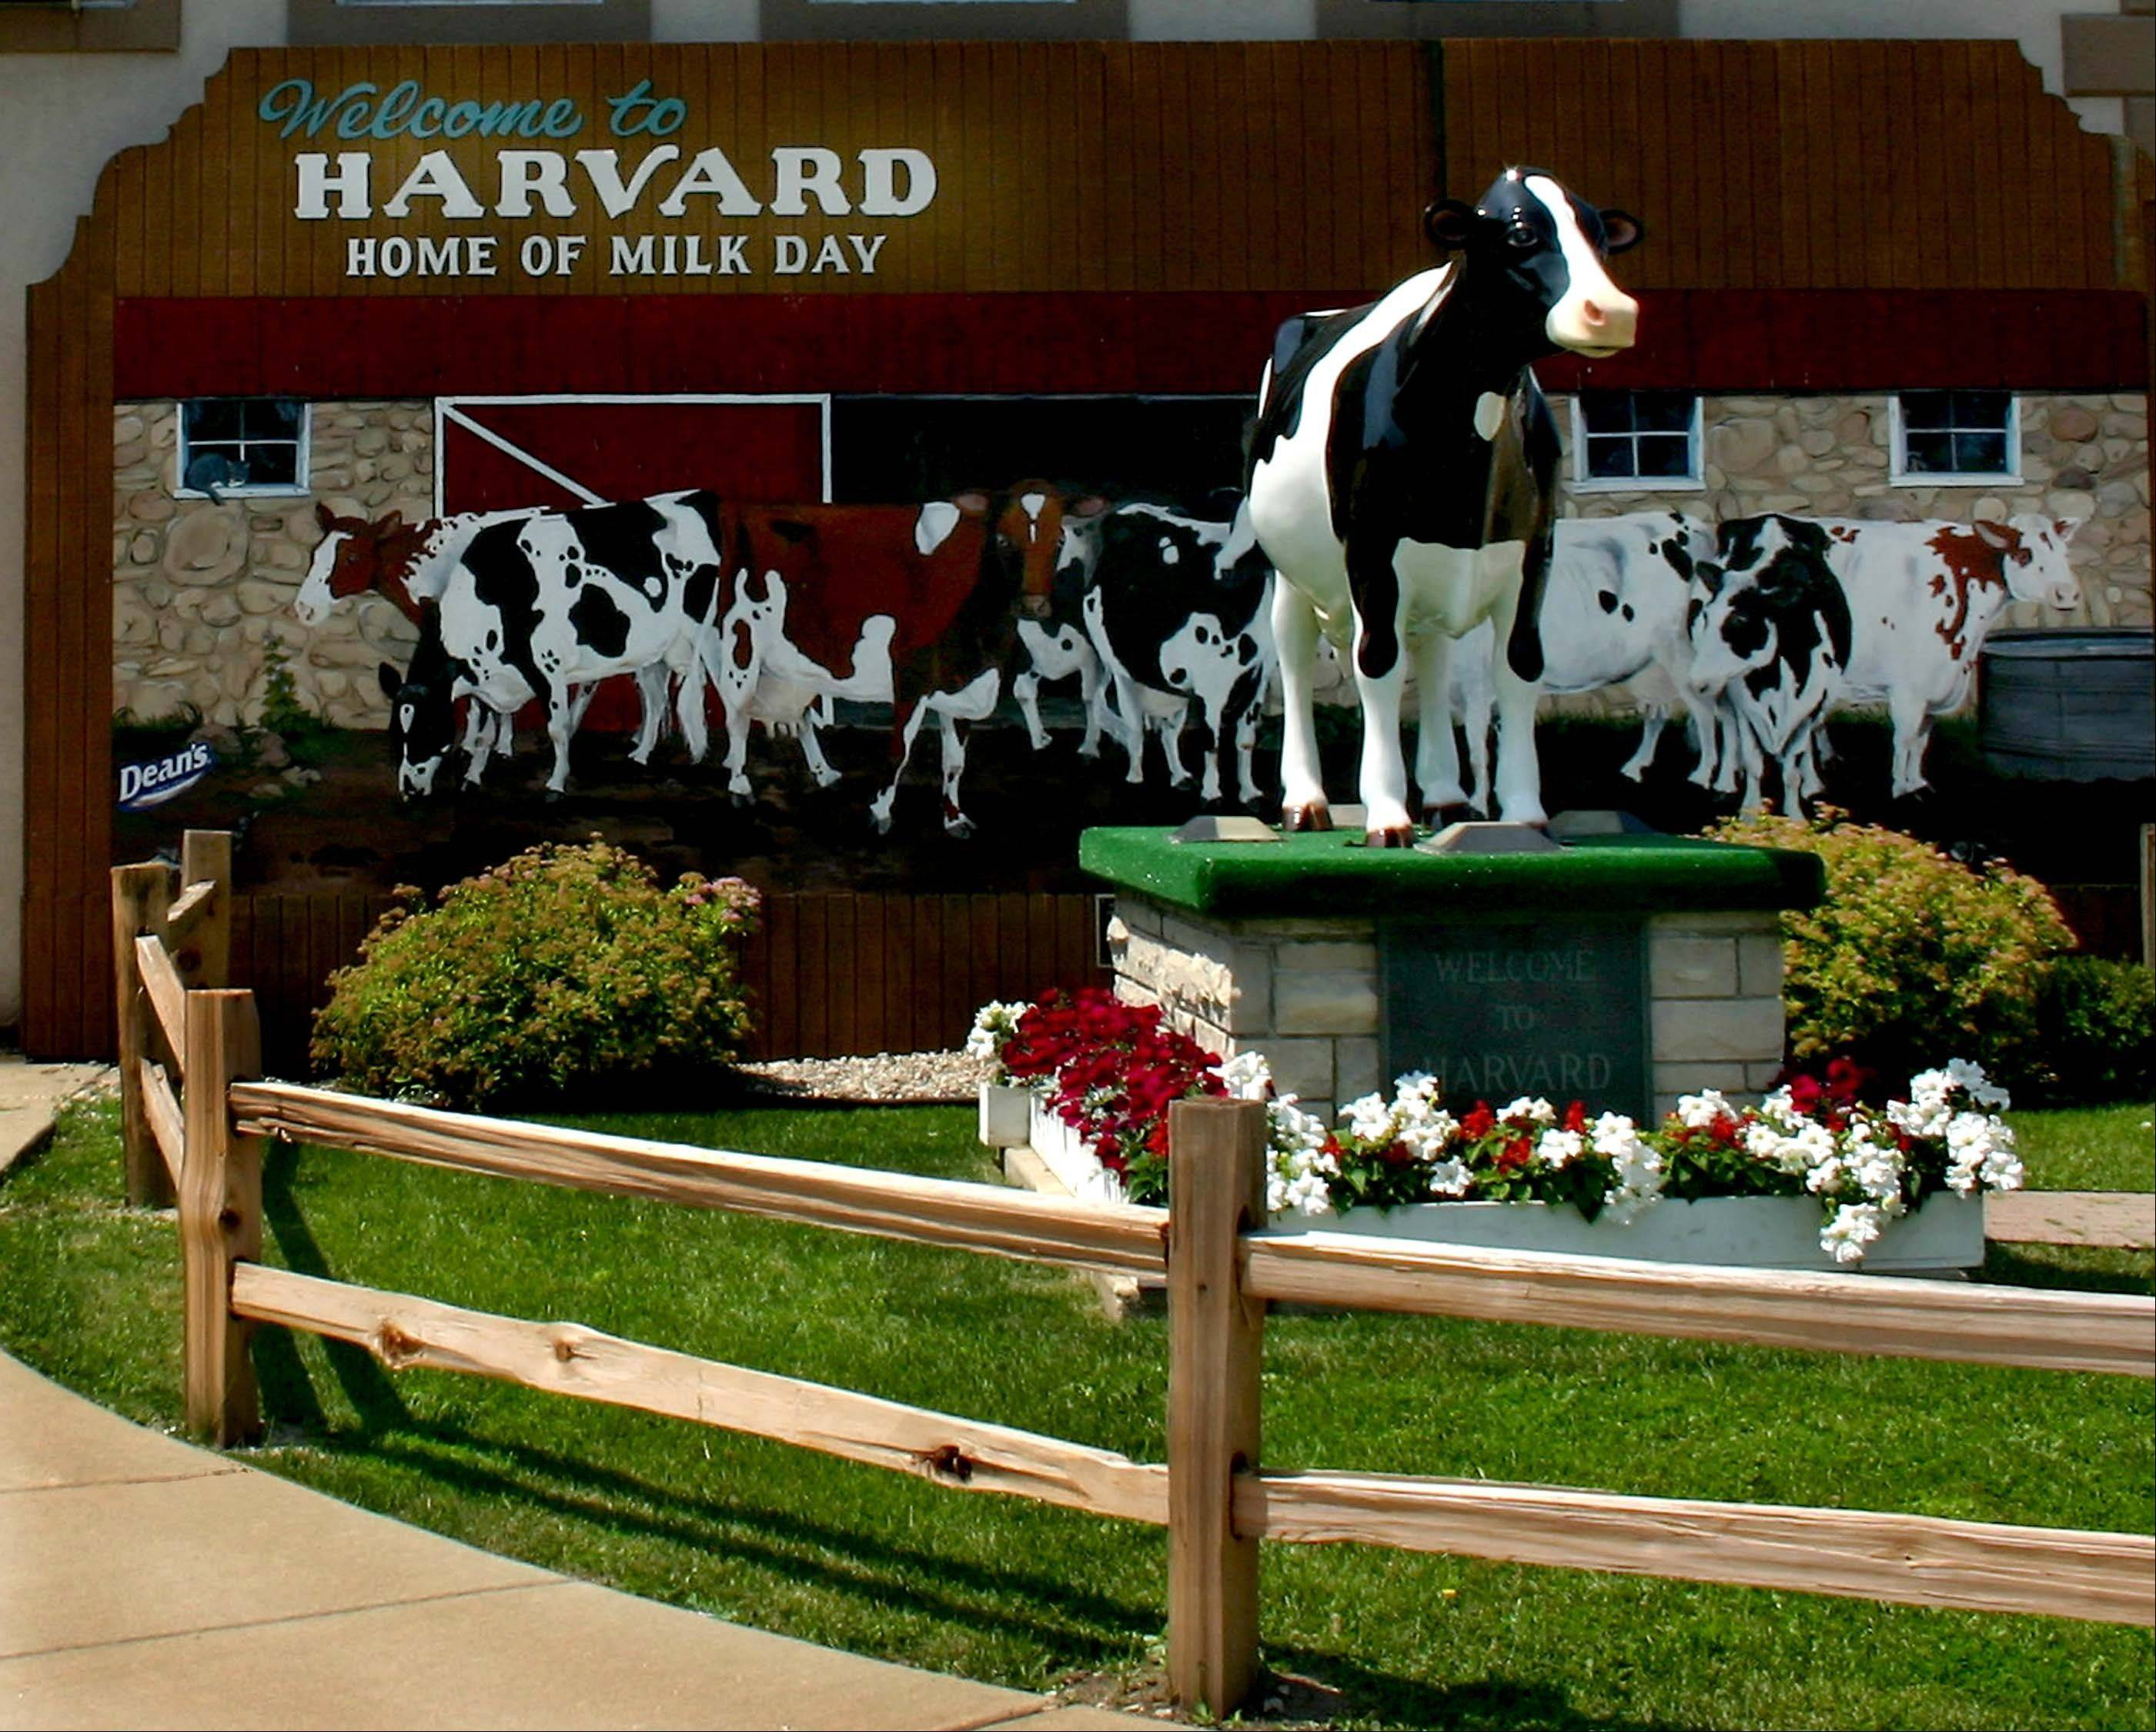 The suburbs boast lots of quirky, quaint and interesting events that tourists should appreciate, including this weekend's Harvard Milk Days festival.